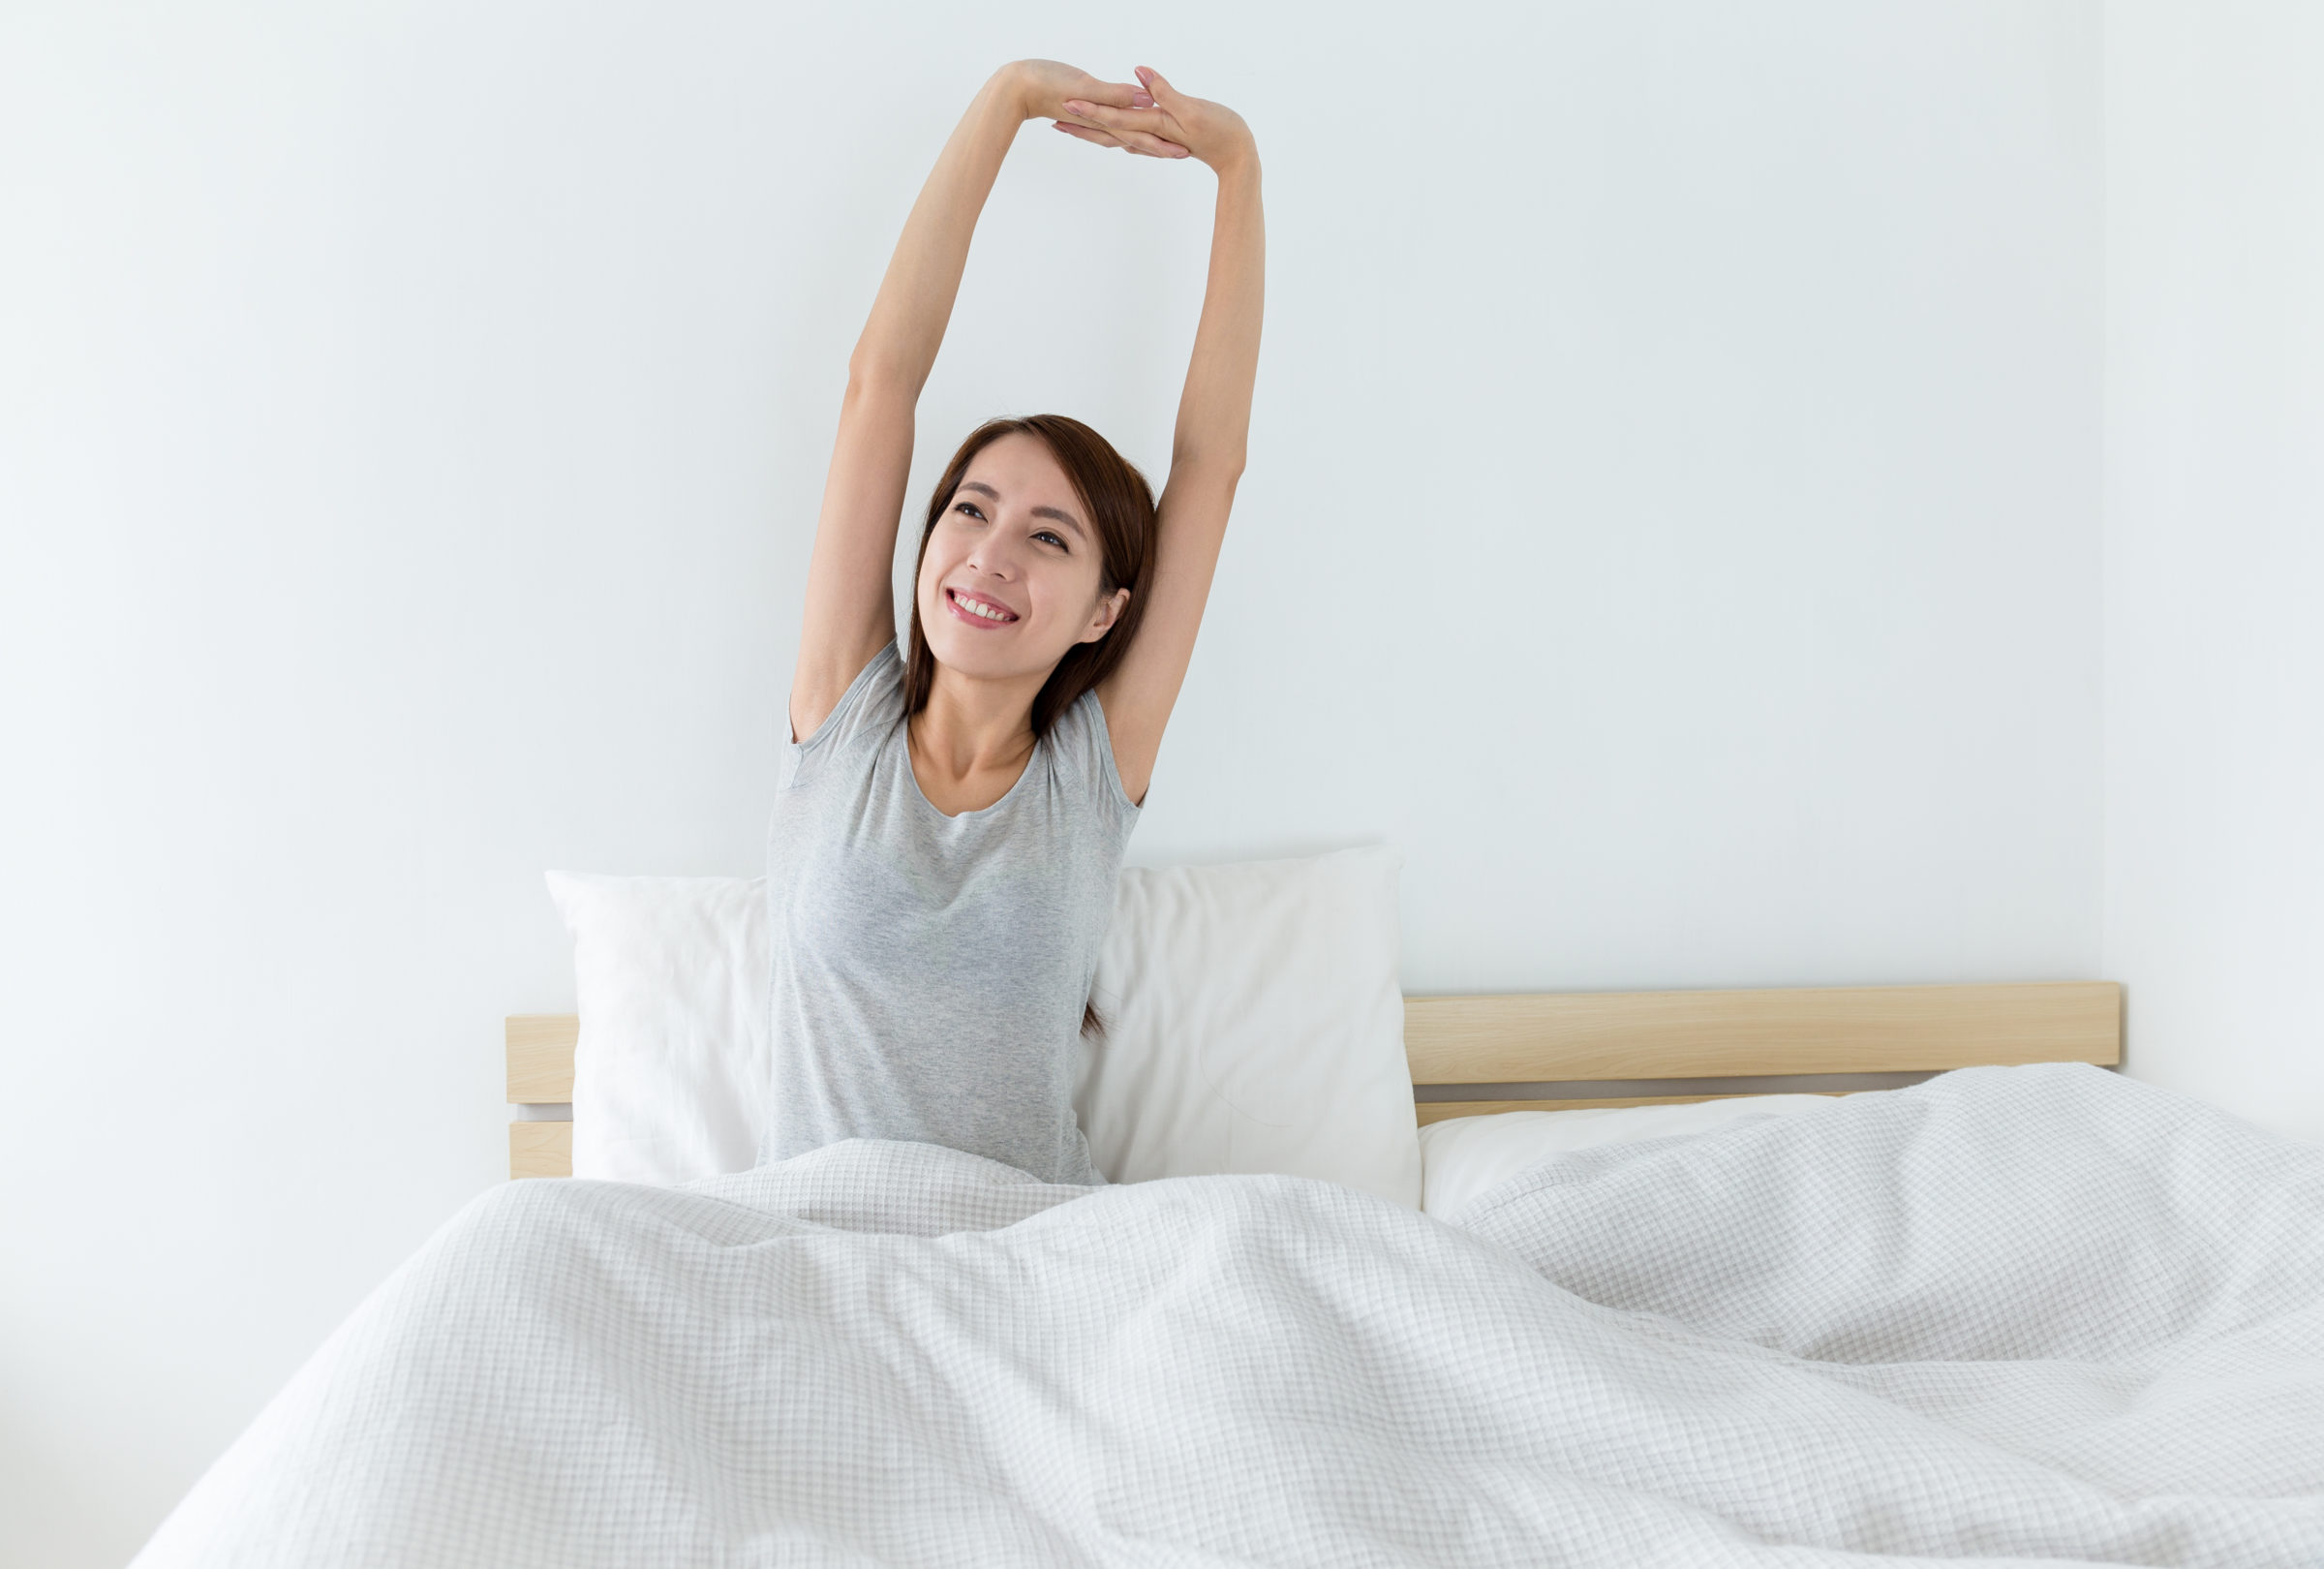 young woman waking up happily after a good night s PRWBHNL